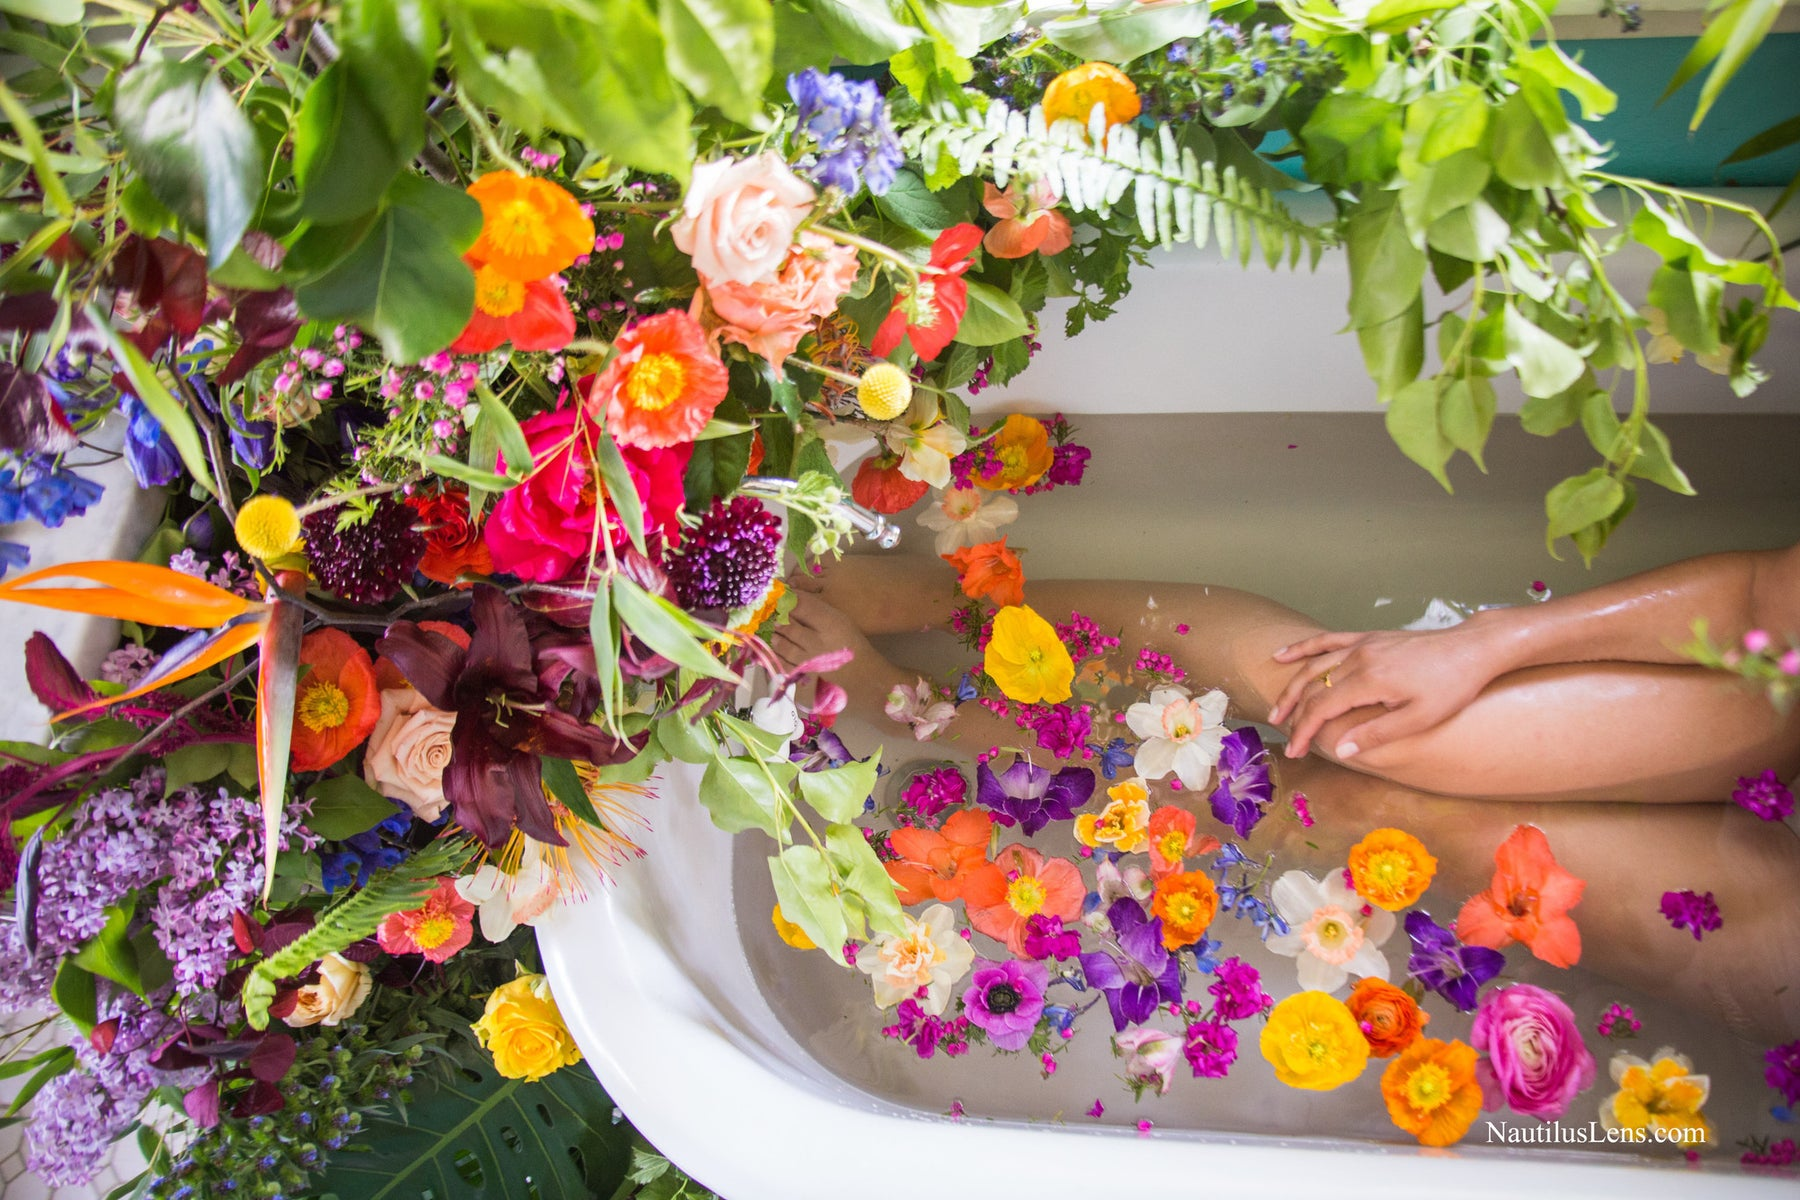 Colorful floating blooms in the bathtub with a forest of flowers